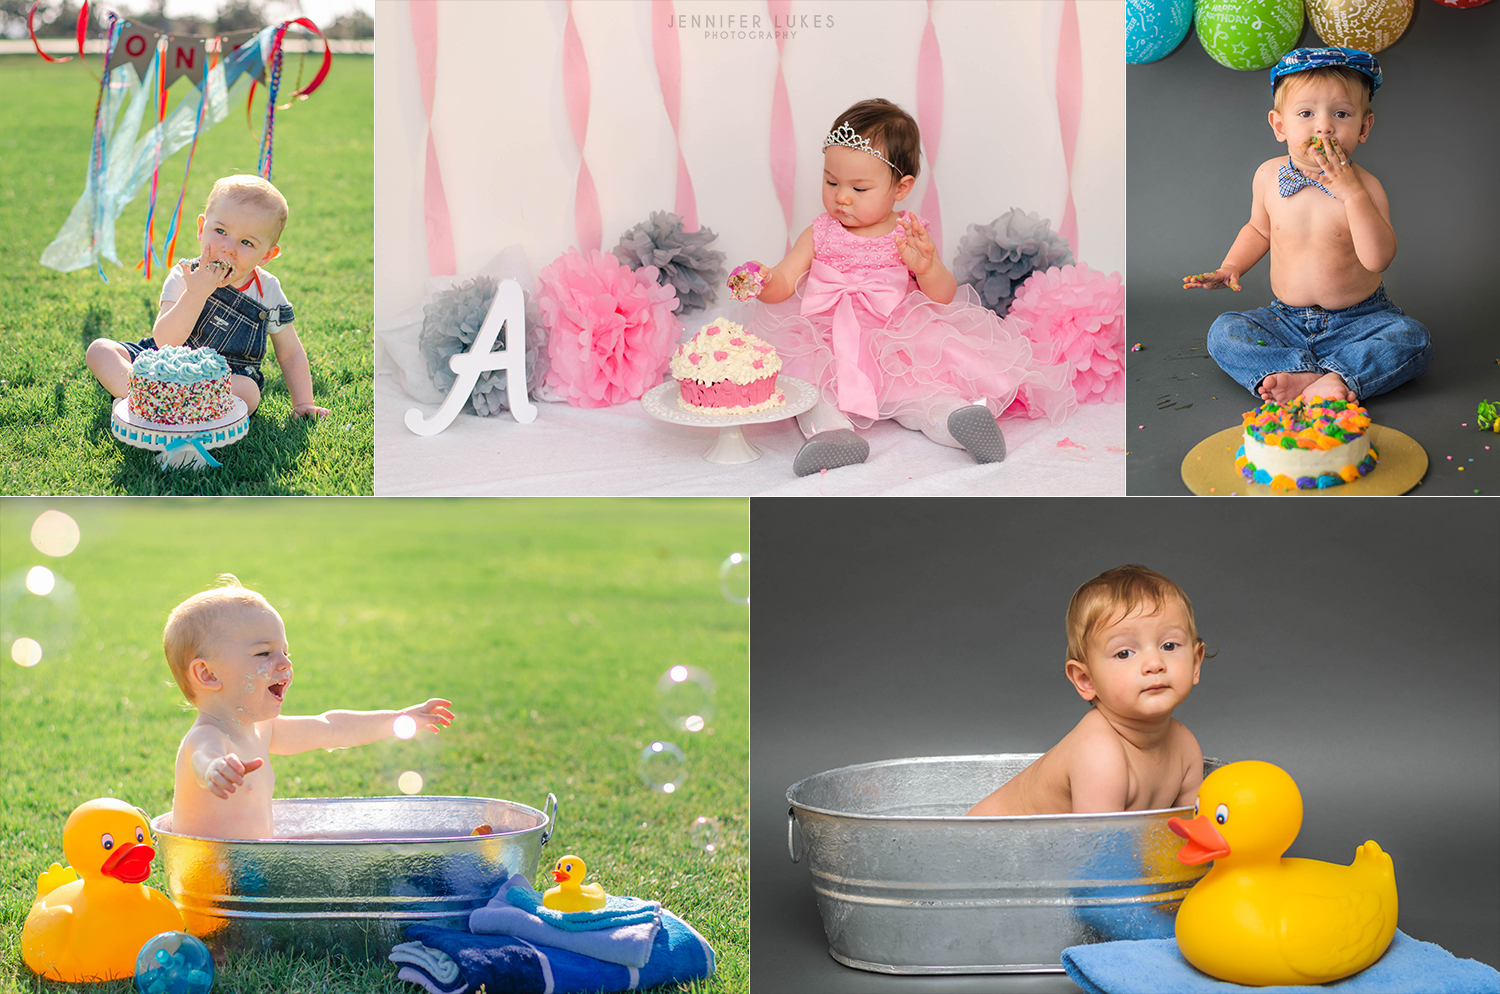 Bellevue, Washington first birthday cake smash and splash photos.